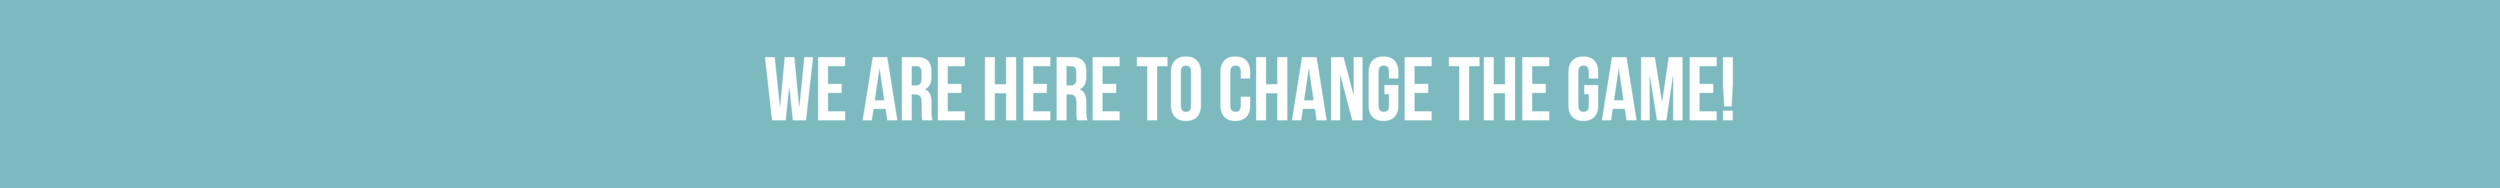 Change the Game Graphic.png